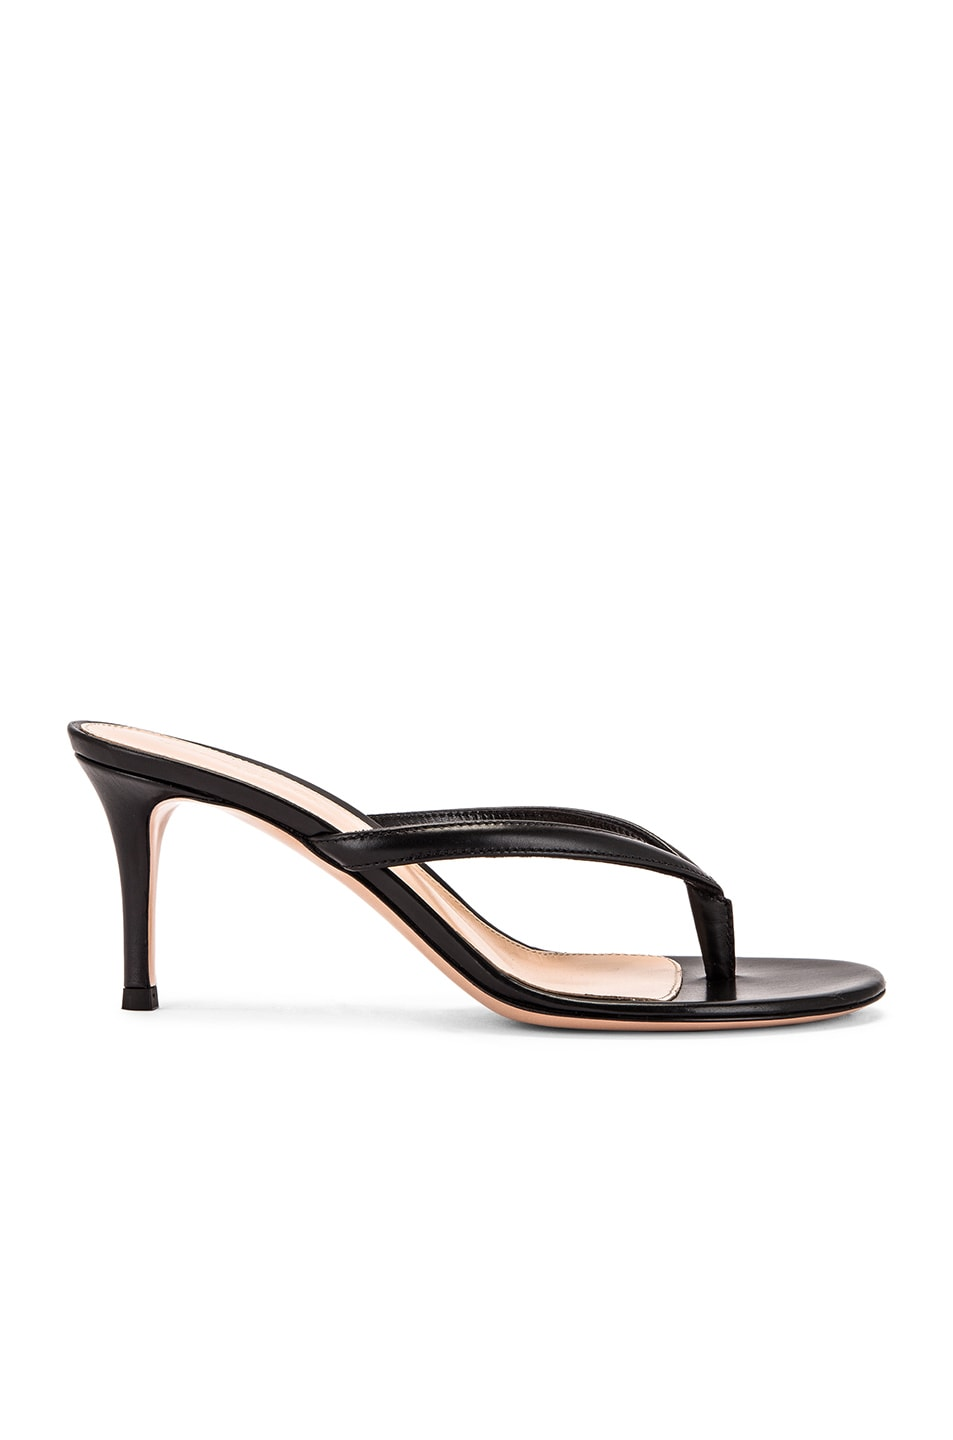 Image 1 of Gianvito Rossi Thong Sandals in Black